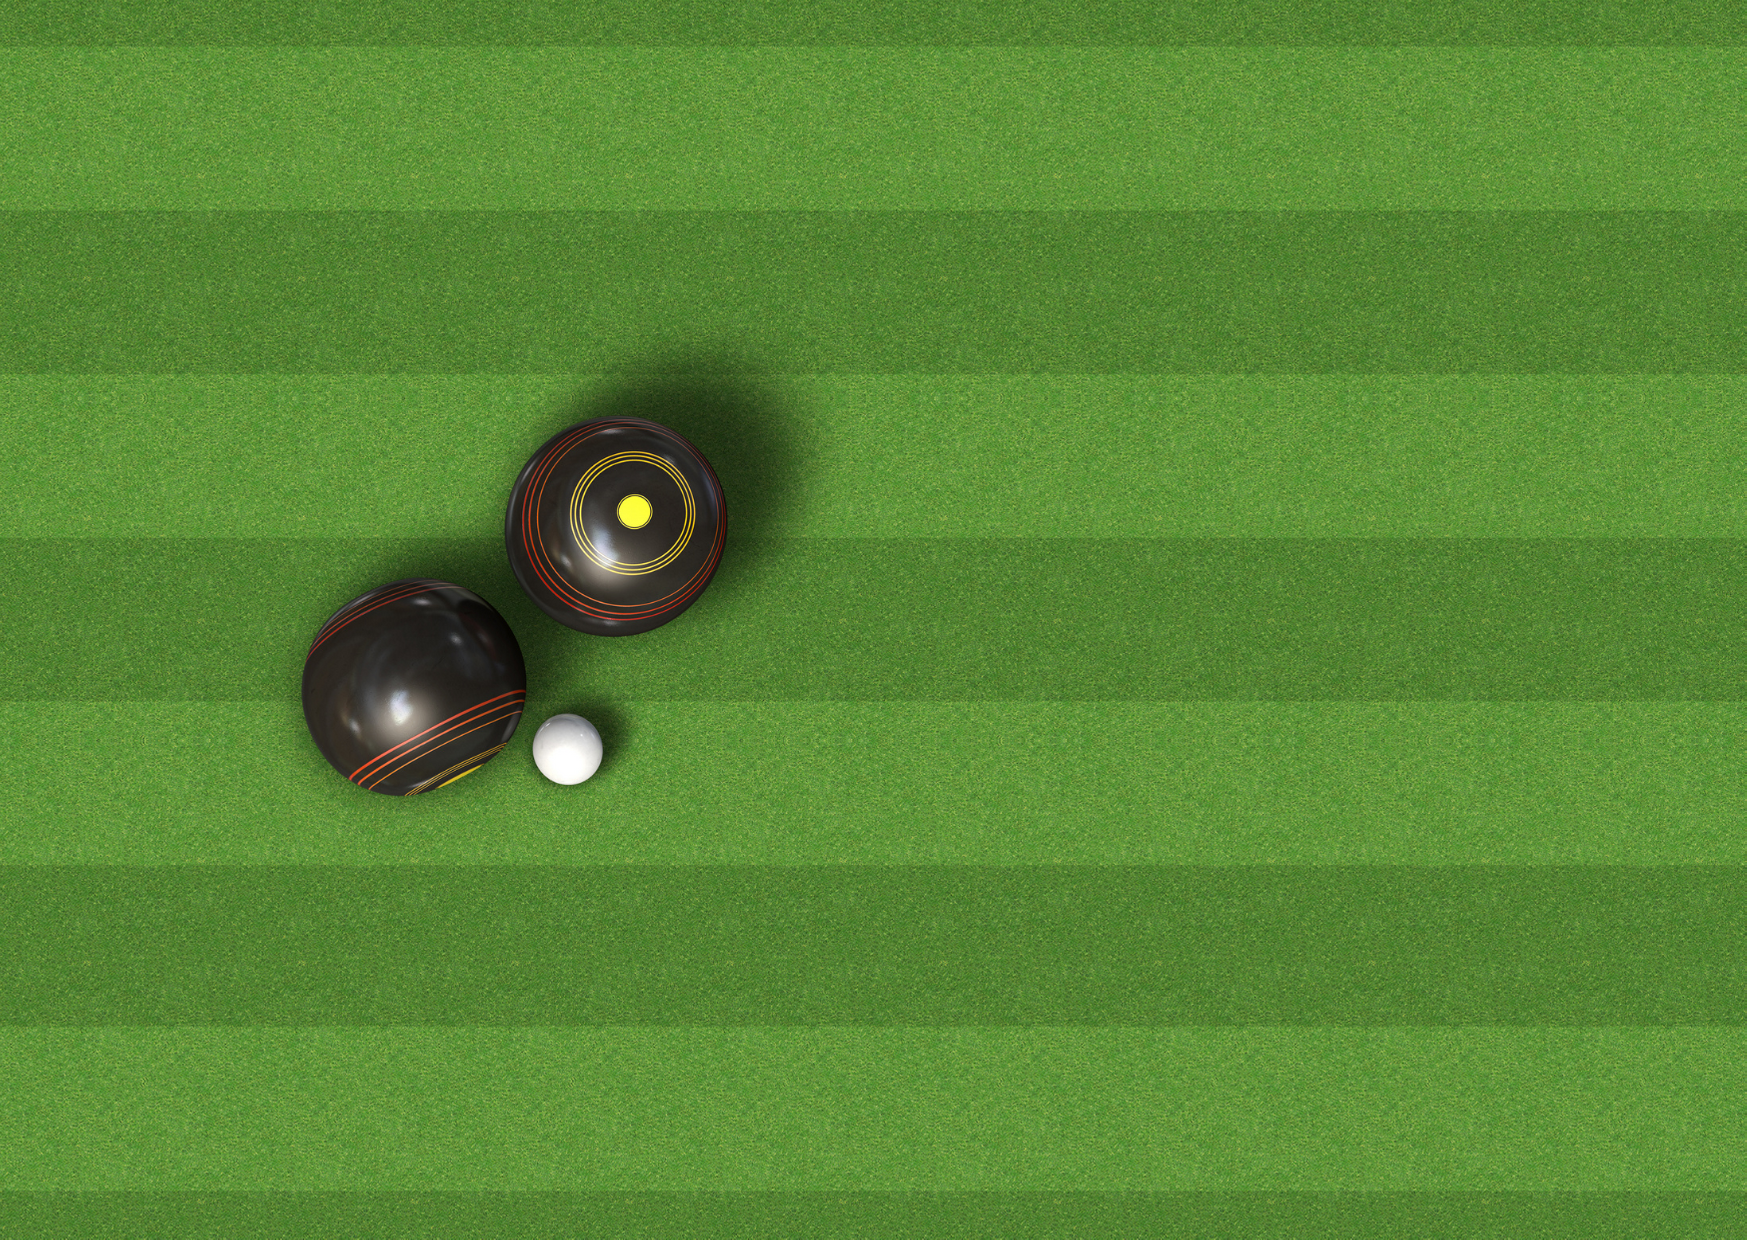 Photo of Lawn Bowls